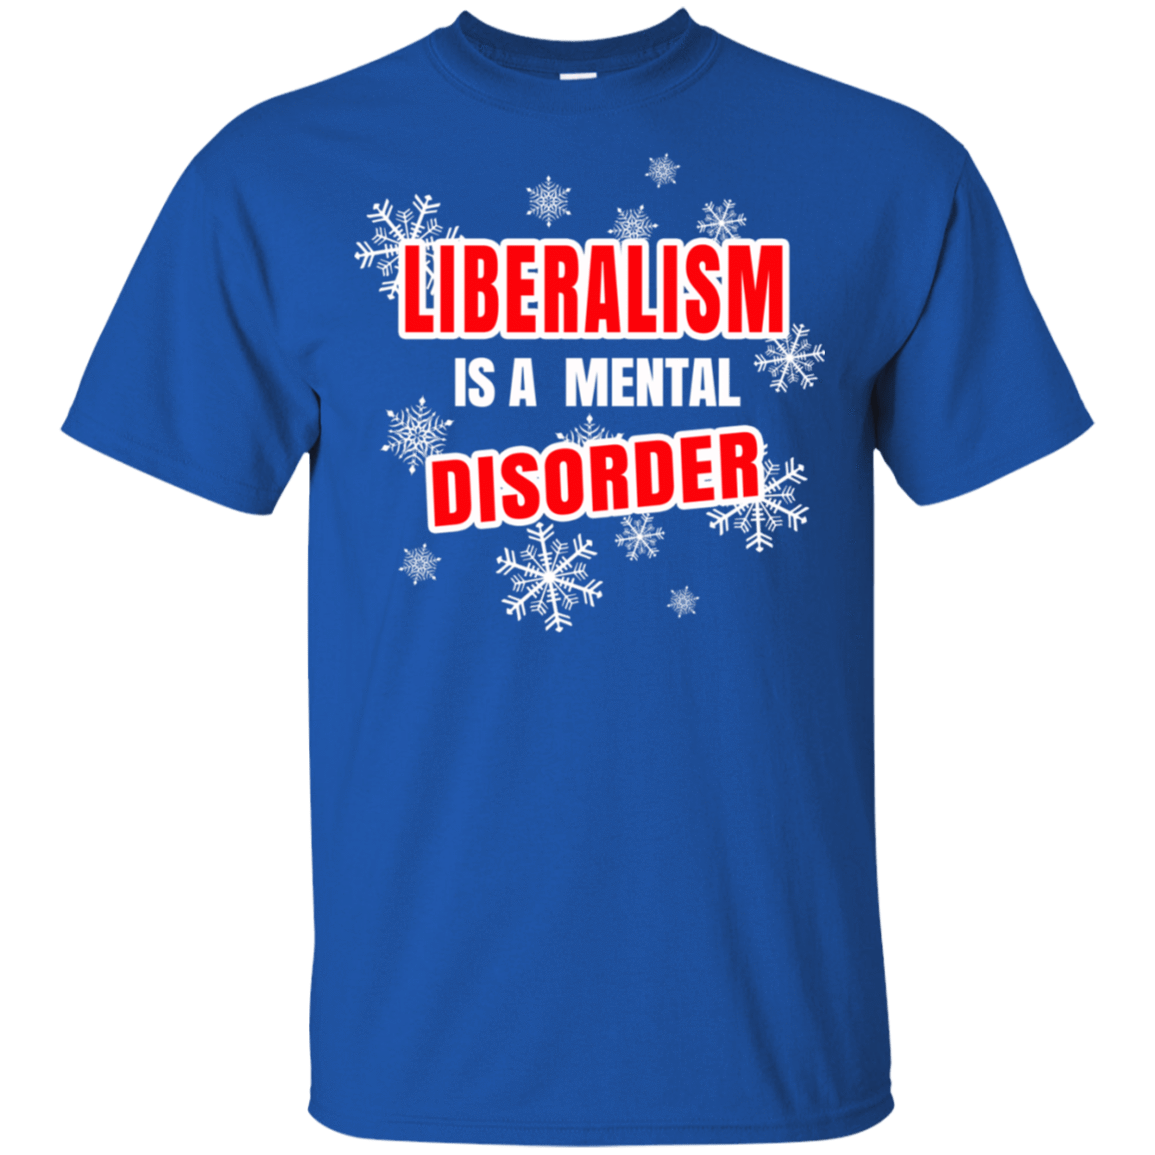 Liberalism Is A Mental Disorder 22-110-74095504-249 - Tee Ript